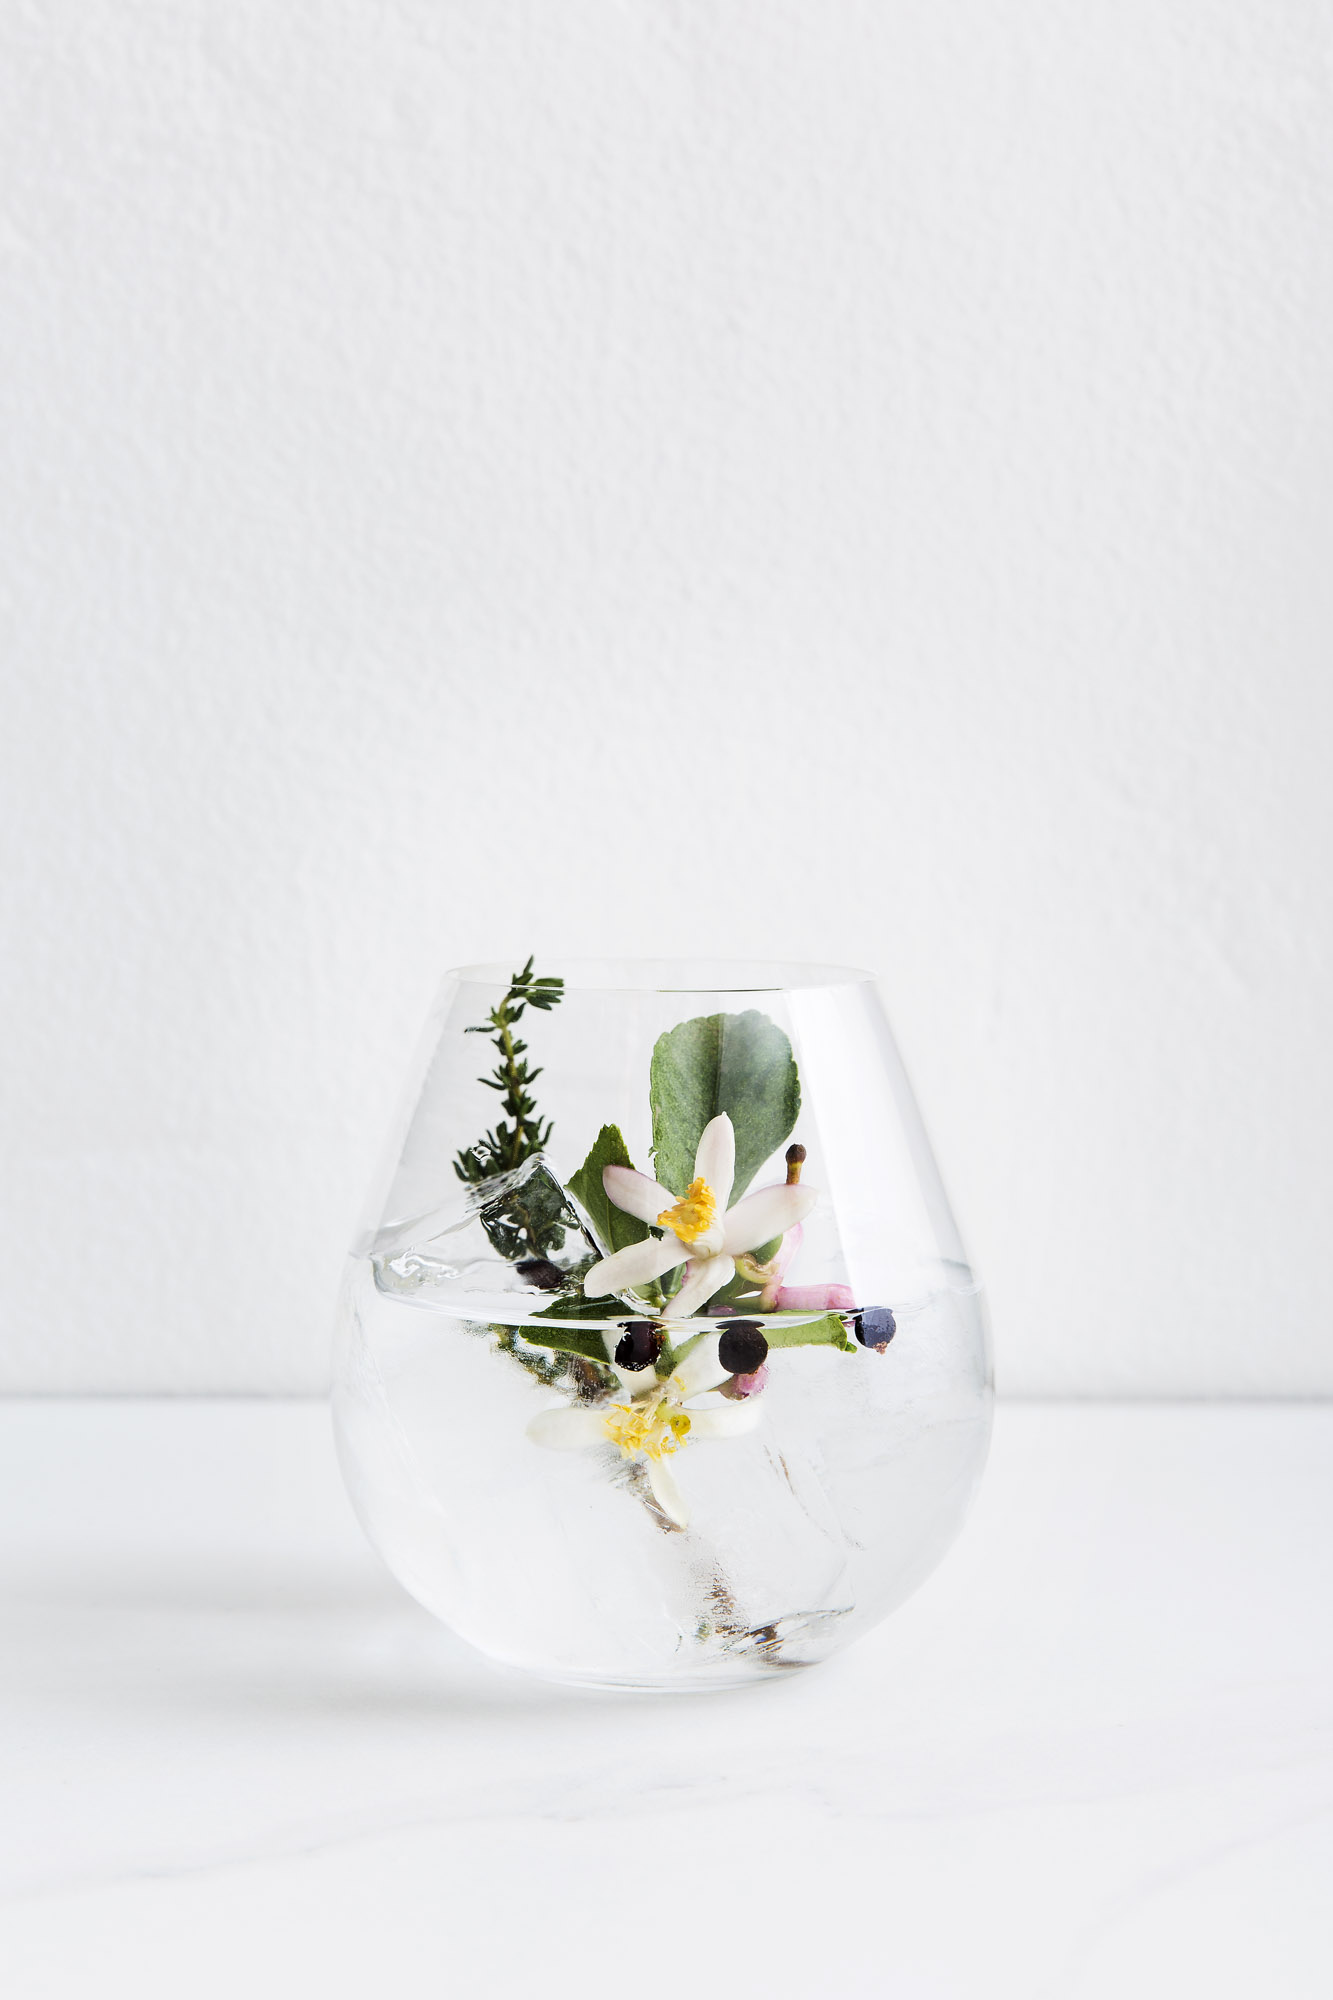 CALIFORNIA GIN & TONIC   1 1/2 oz Gin  1/2 oz Chareau  Tonic Water  Pour Gin and Chareau over ice. Top with tonic and your choice of fresh herbs, citrus, and fruit.  (Thyme, Lemon Blossoms, and Juniper Berries shown)